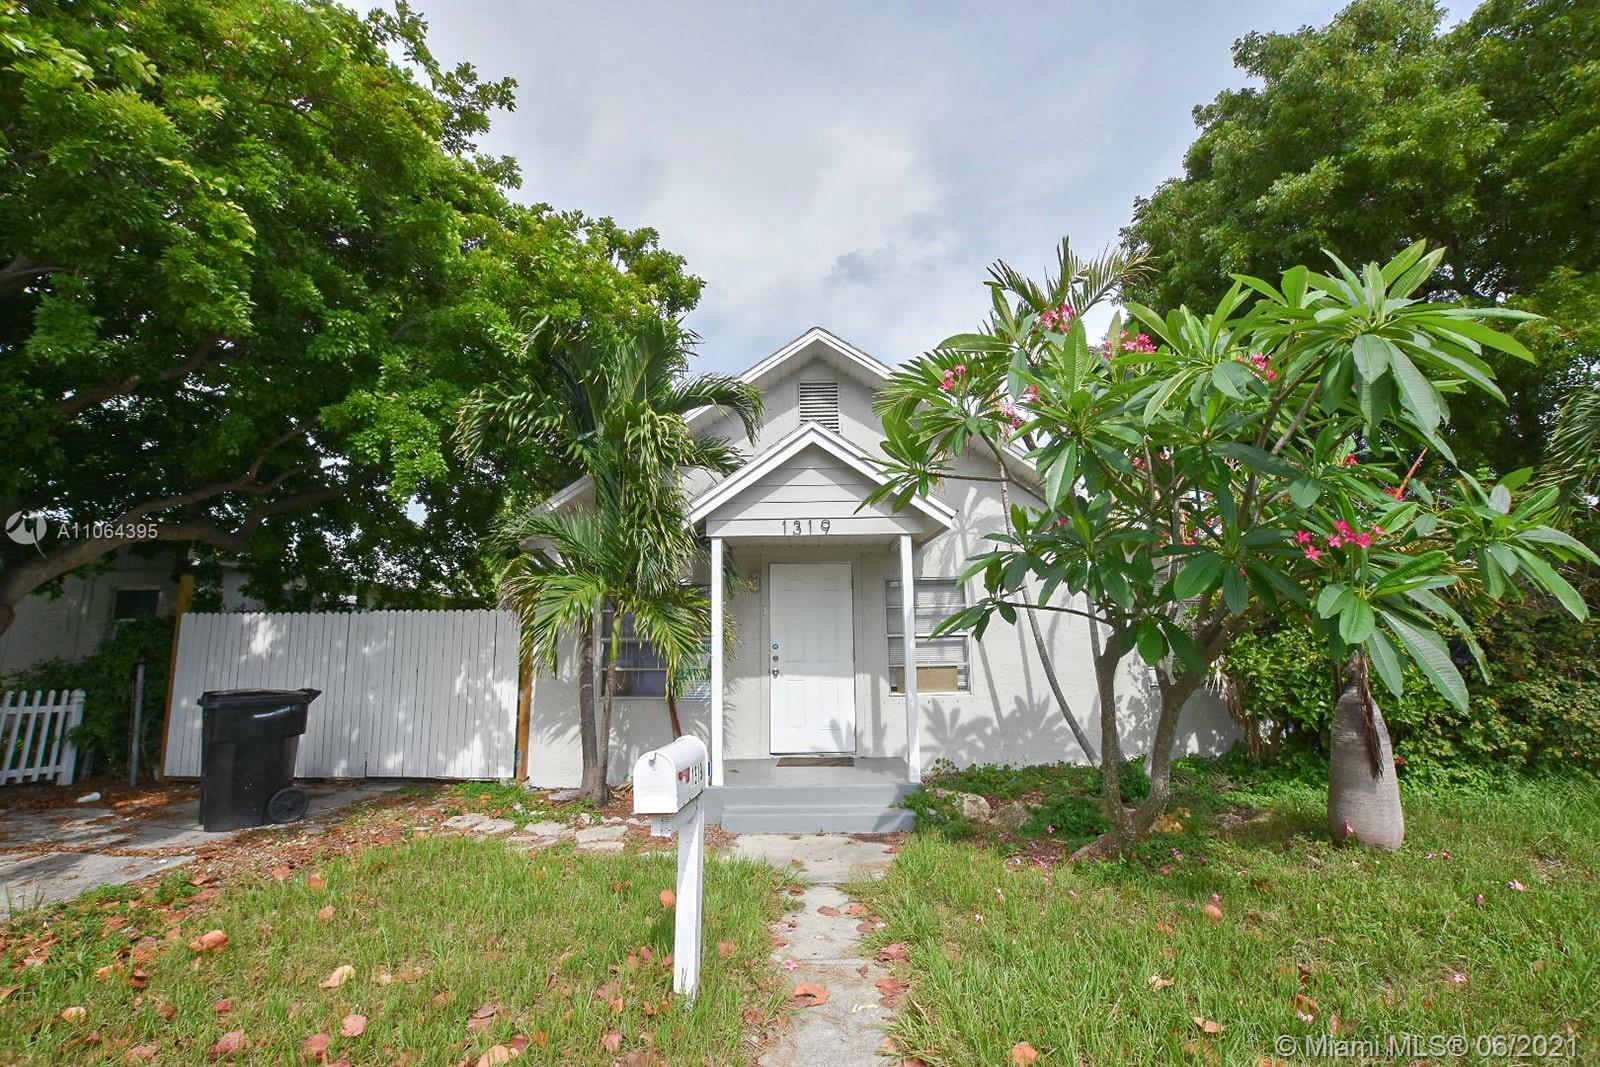 Wonderful starter 2/2 home in Lake Worth. Remodeled kitchen and bathrooms with a 6,700 Sqft Lot with